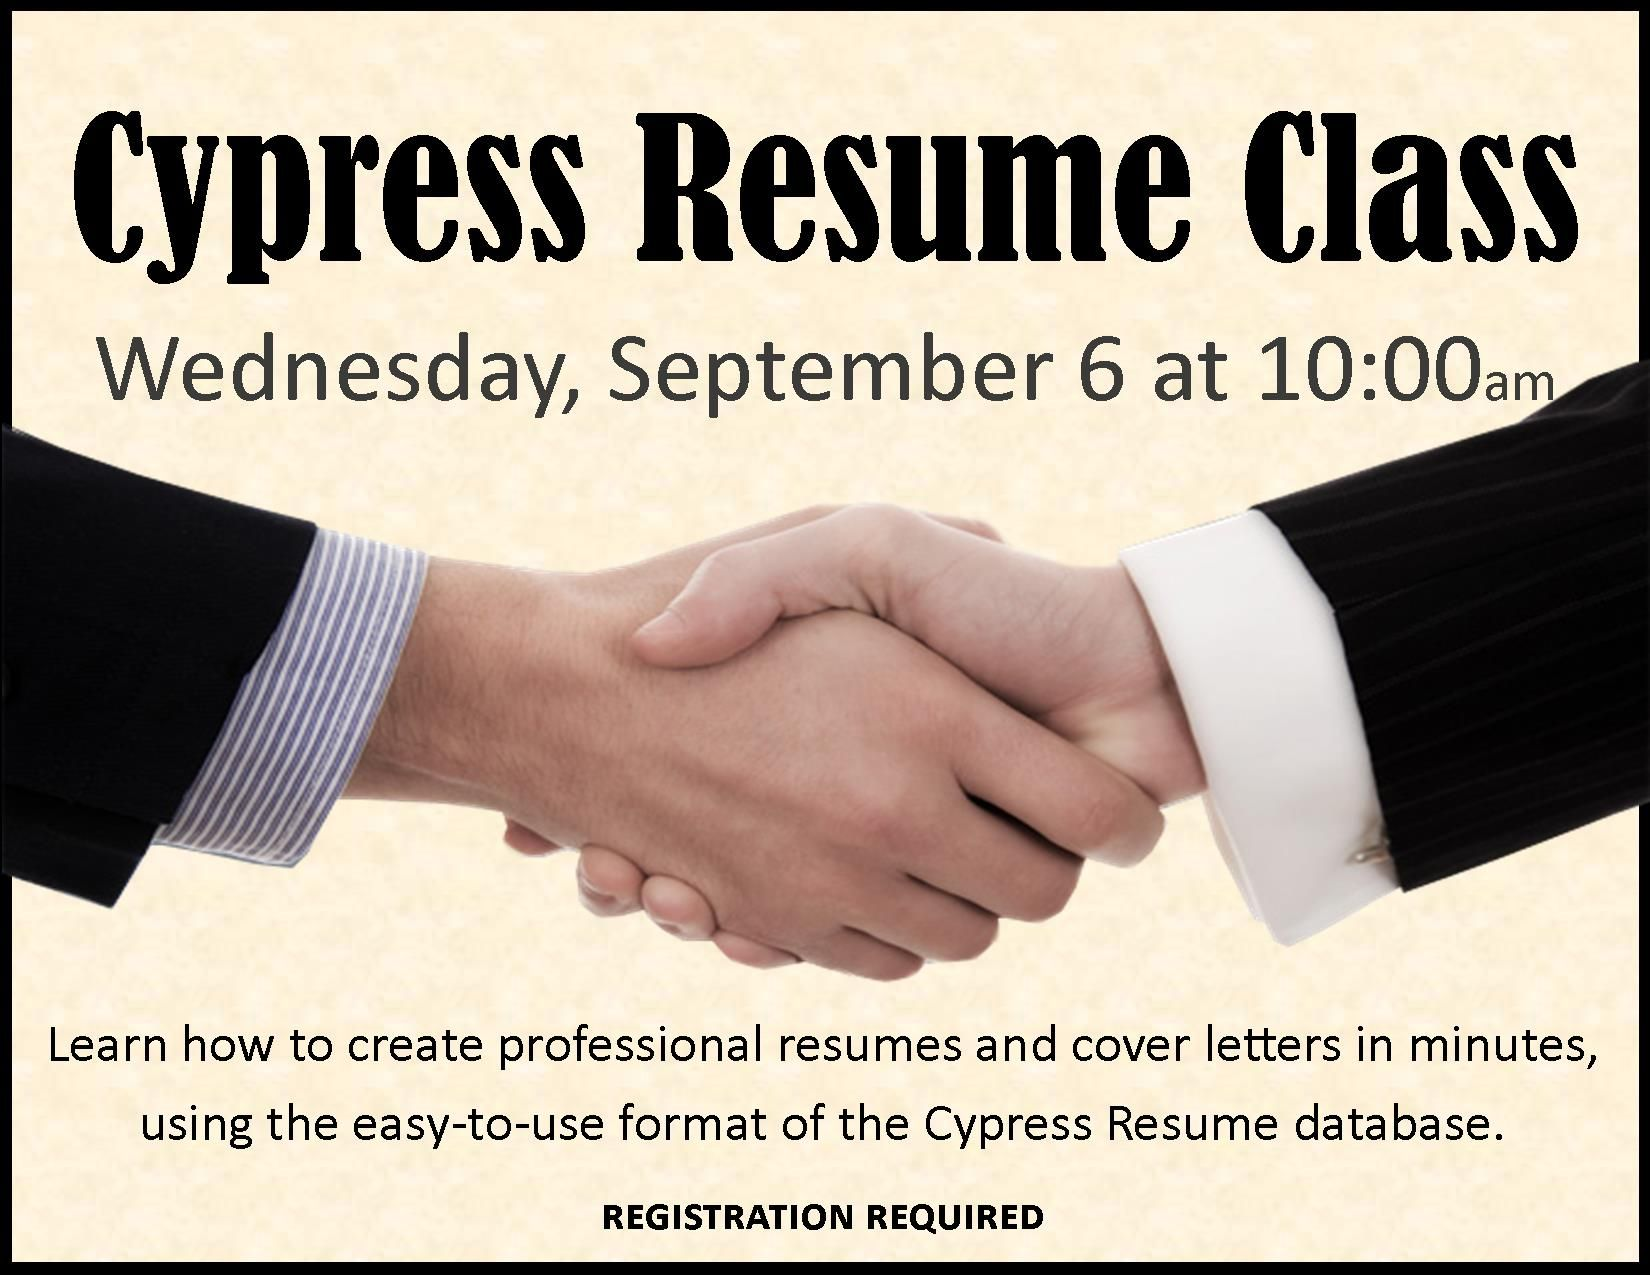 cypress resume class wednesday september 6 2017 10am learn how